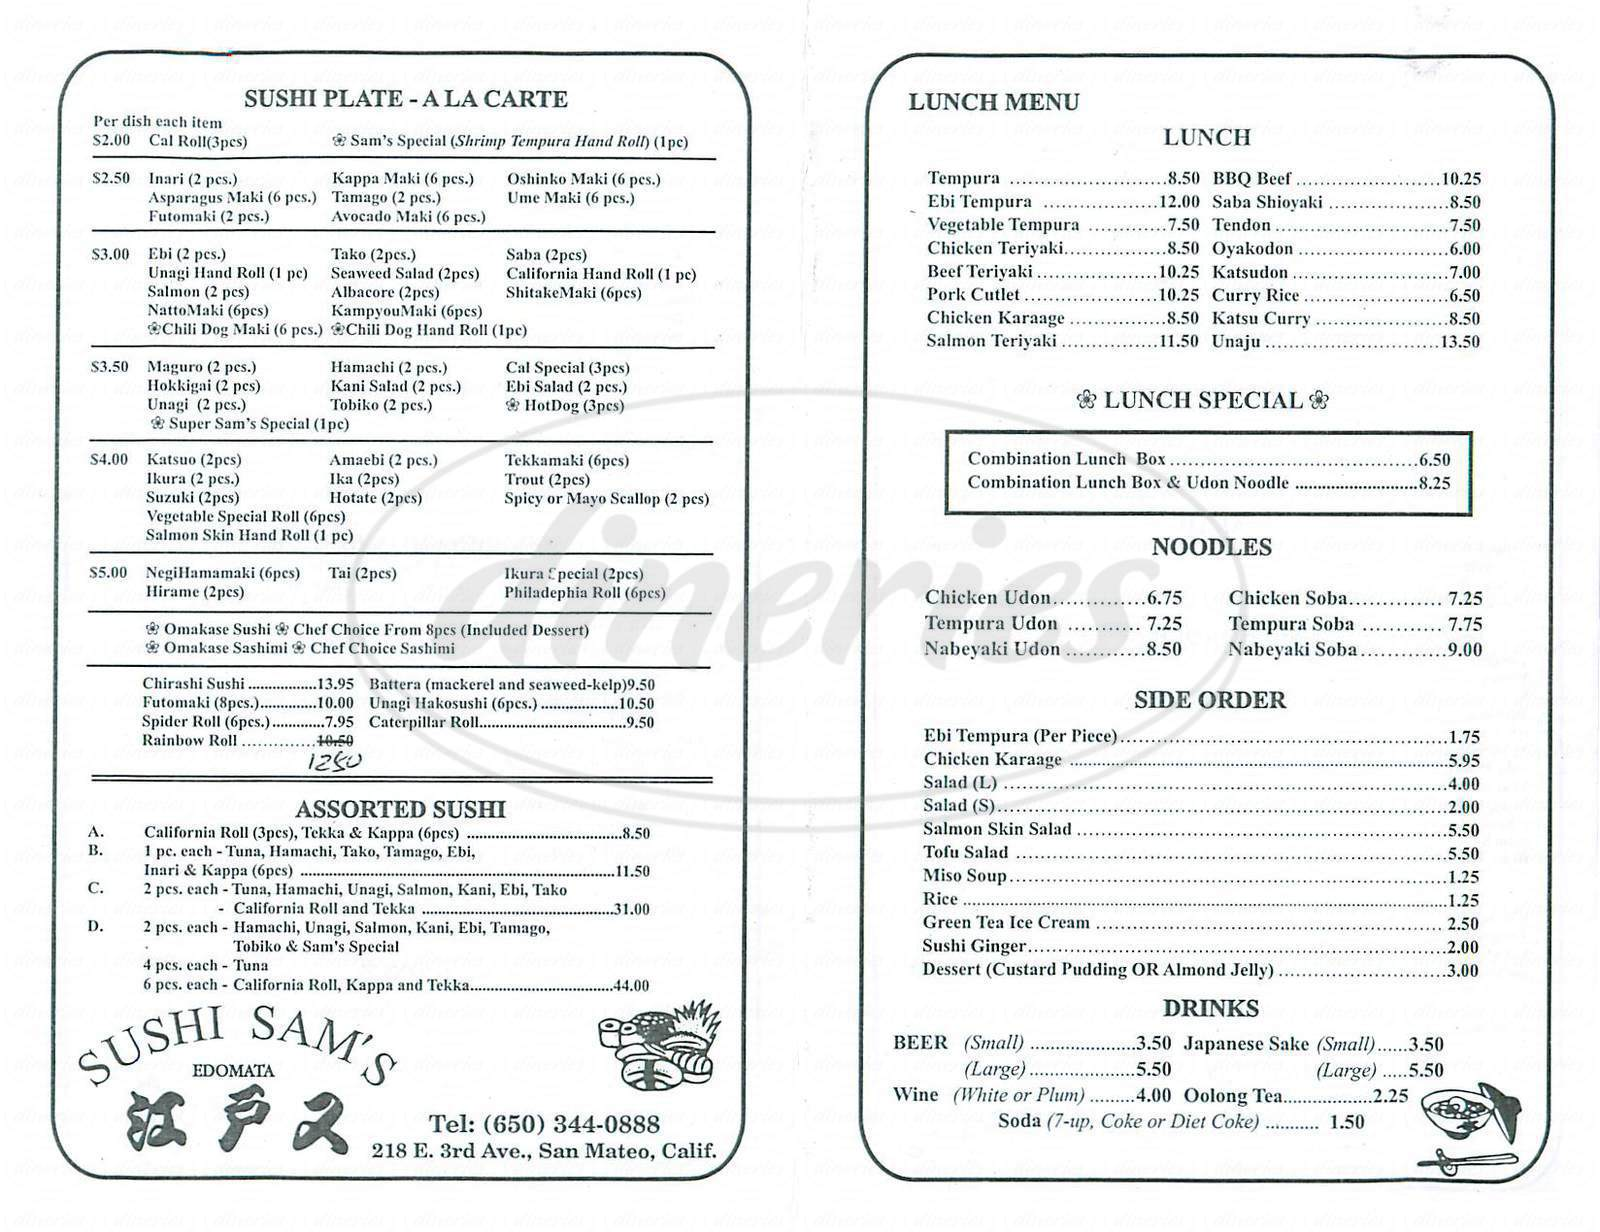 menu for Sushi Sams Edomata